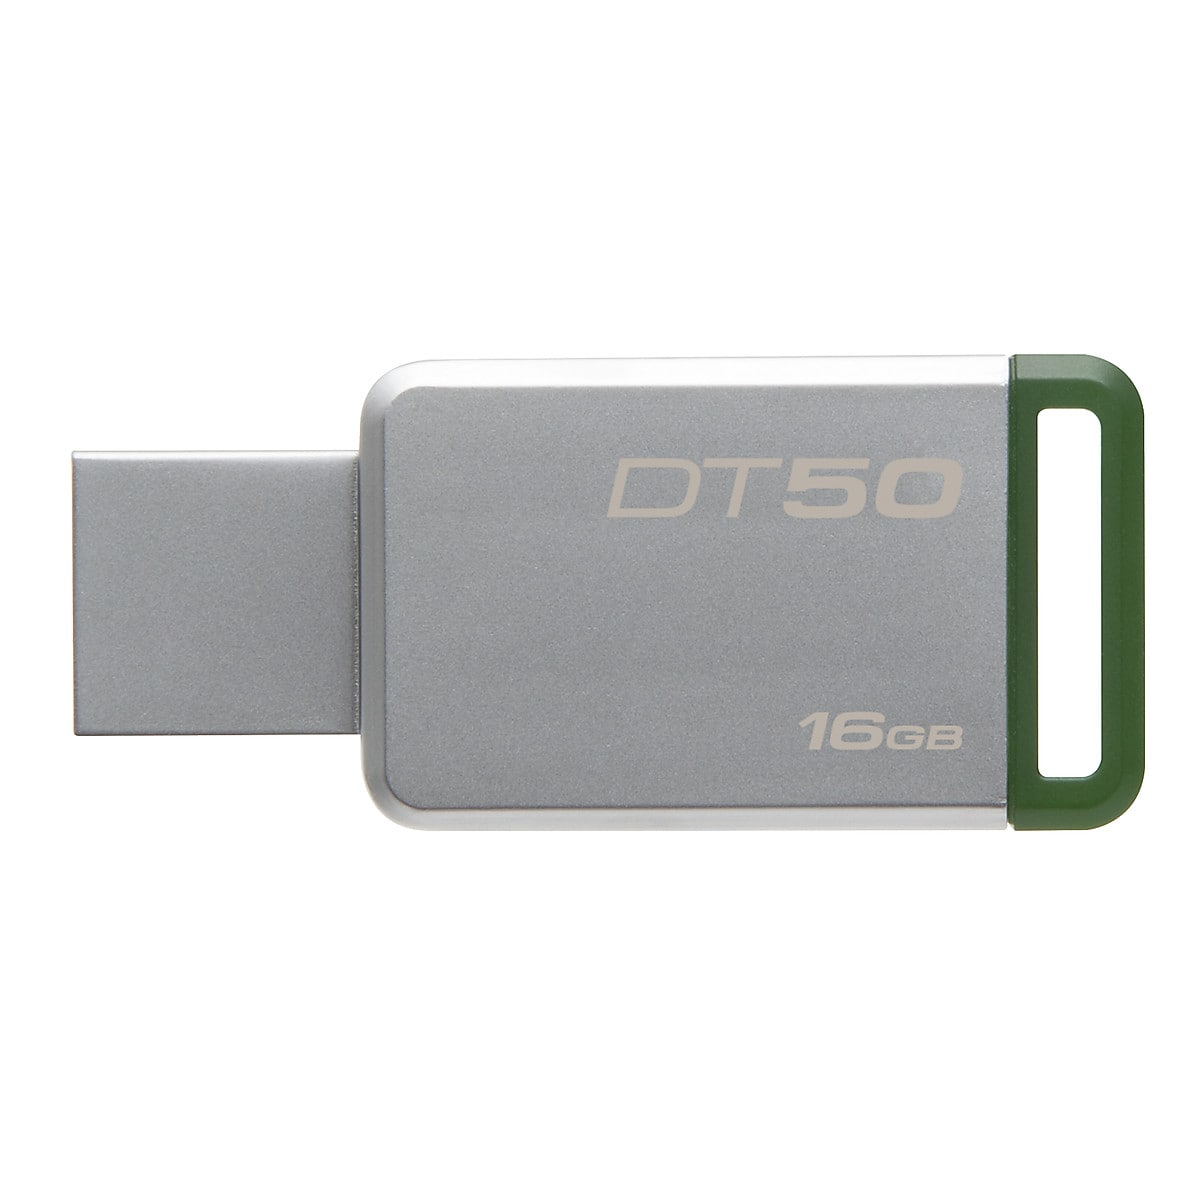 USB-minne 3.0 16GB